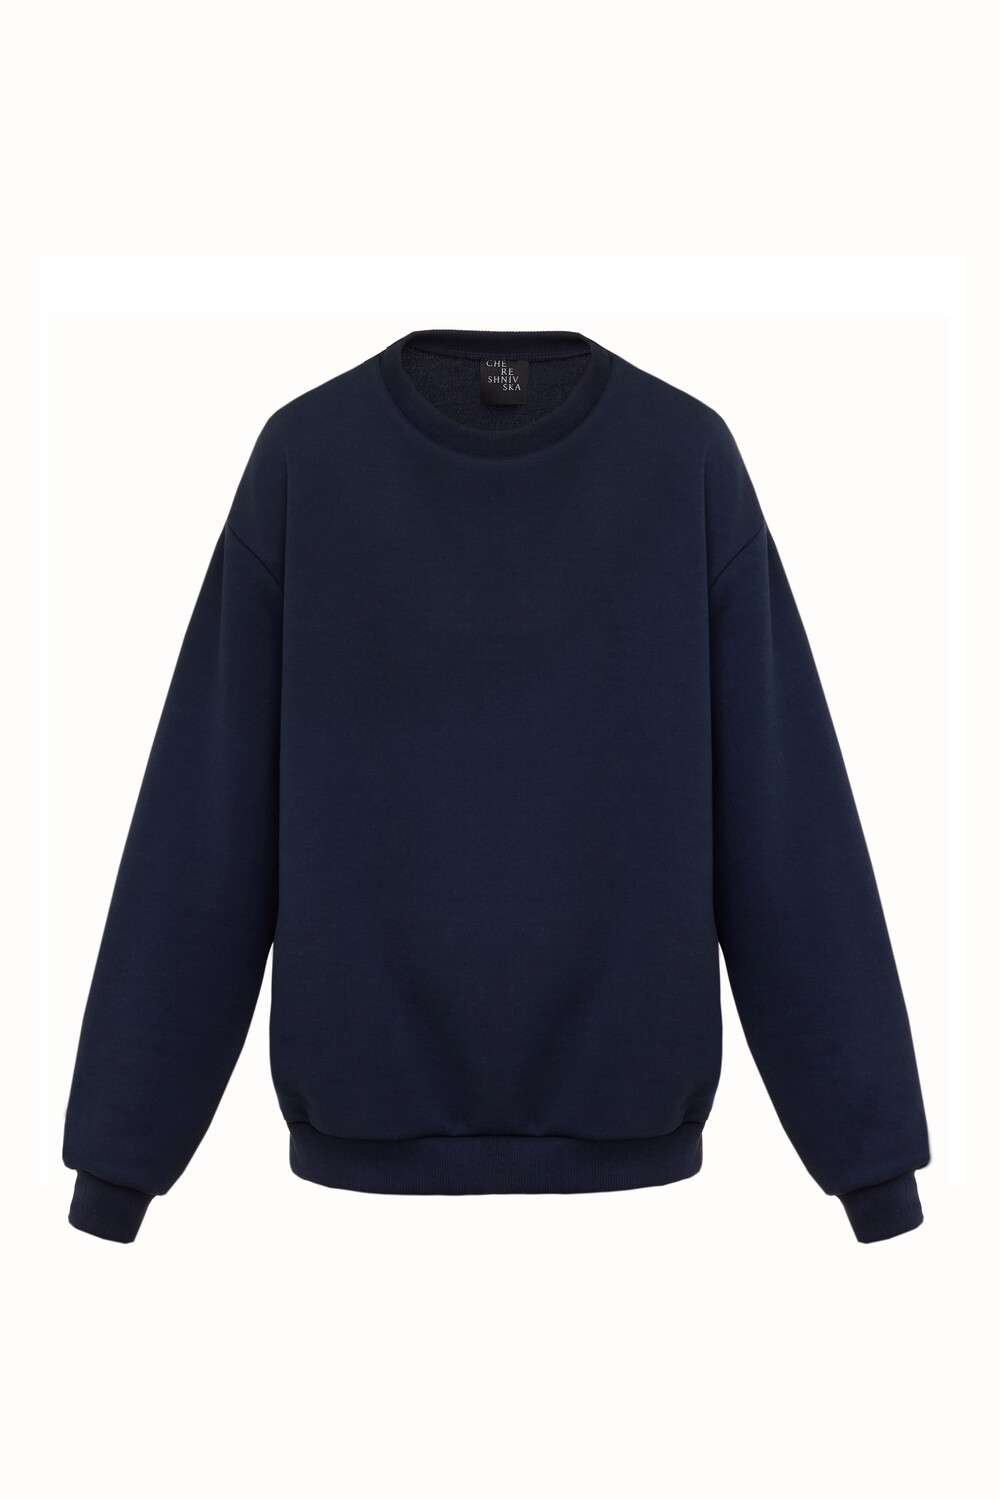 Basic navy sweatshirt